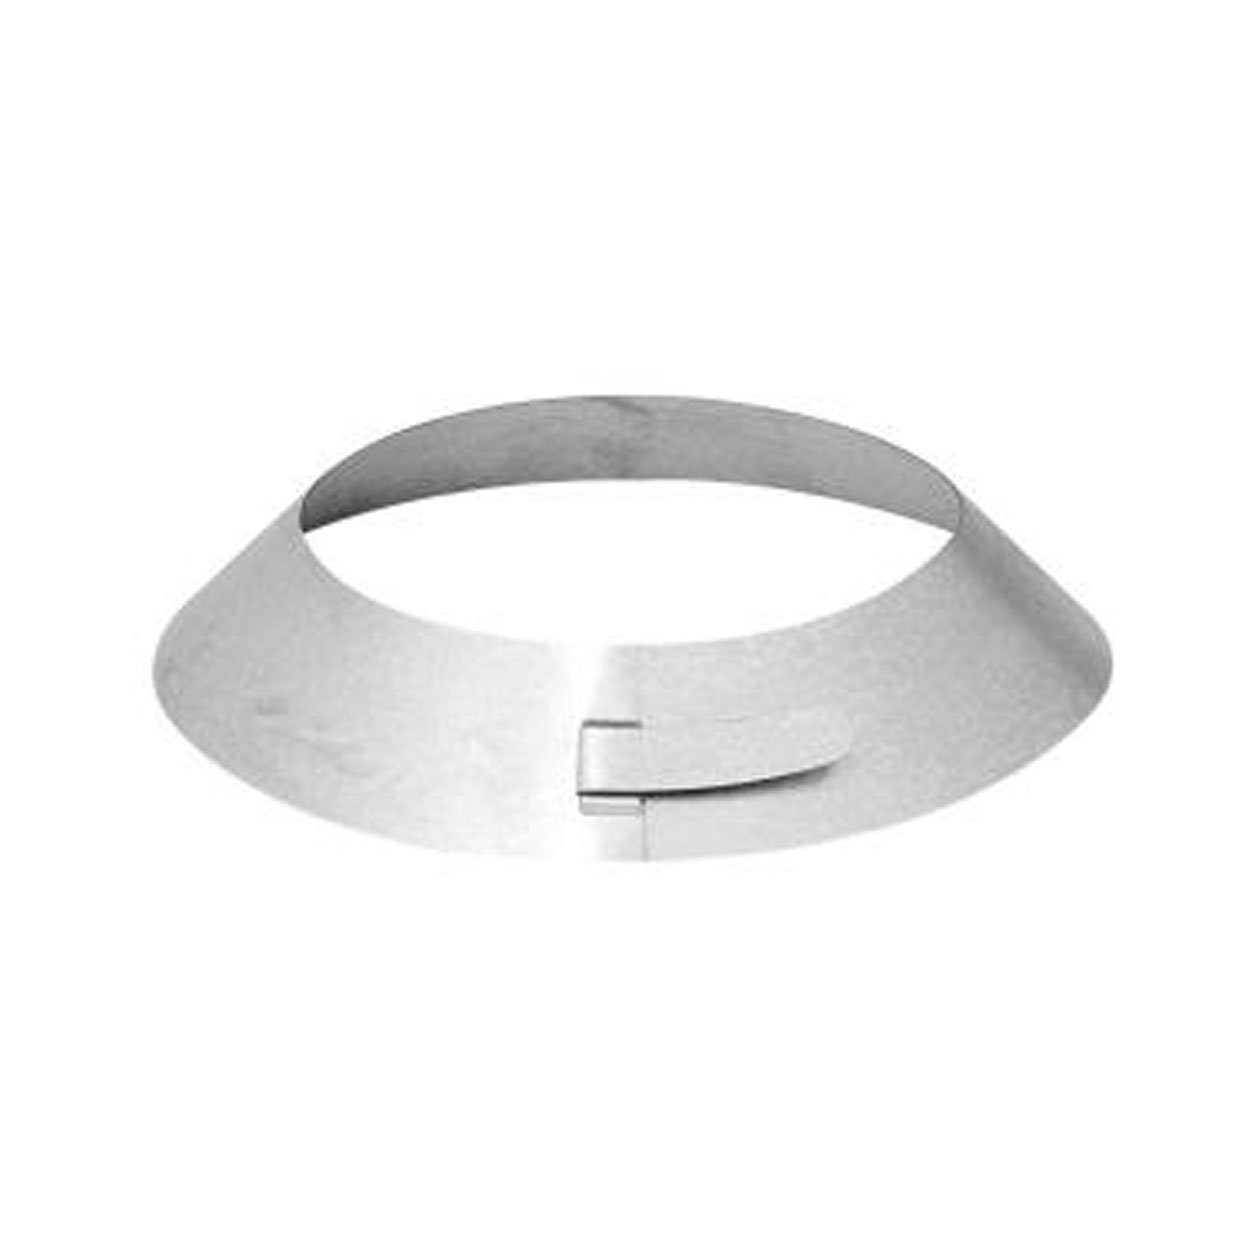 Rheem RTG20151M-1  Galvanized Steel Storm Collar with Spit Ring for Rheem Tankless Gas Water Heaters Venting, 5-Inch